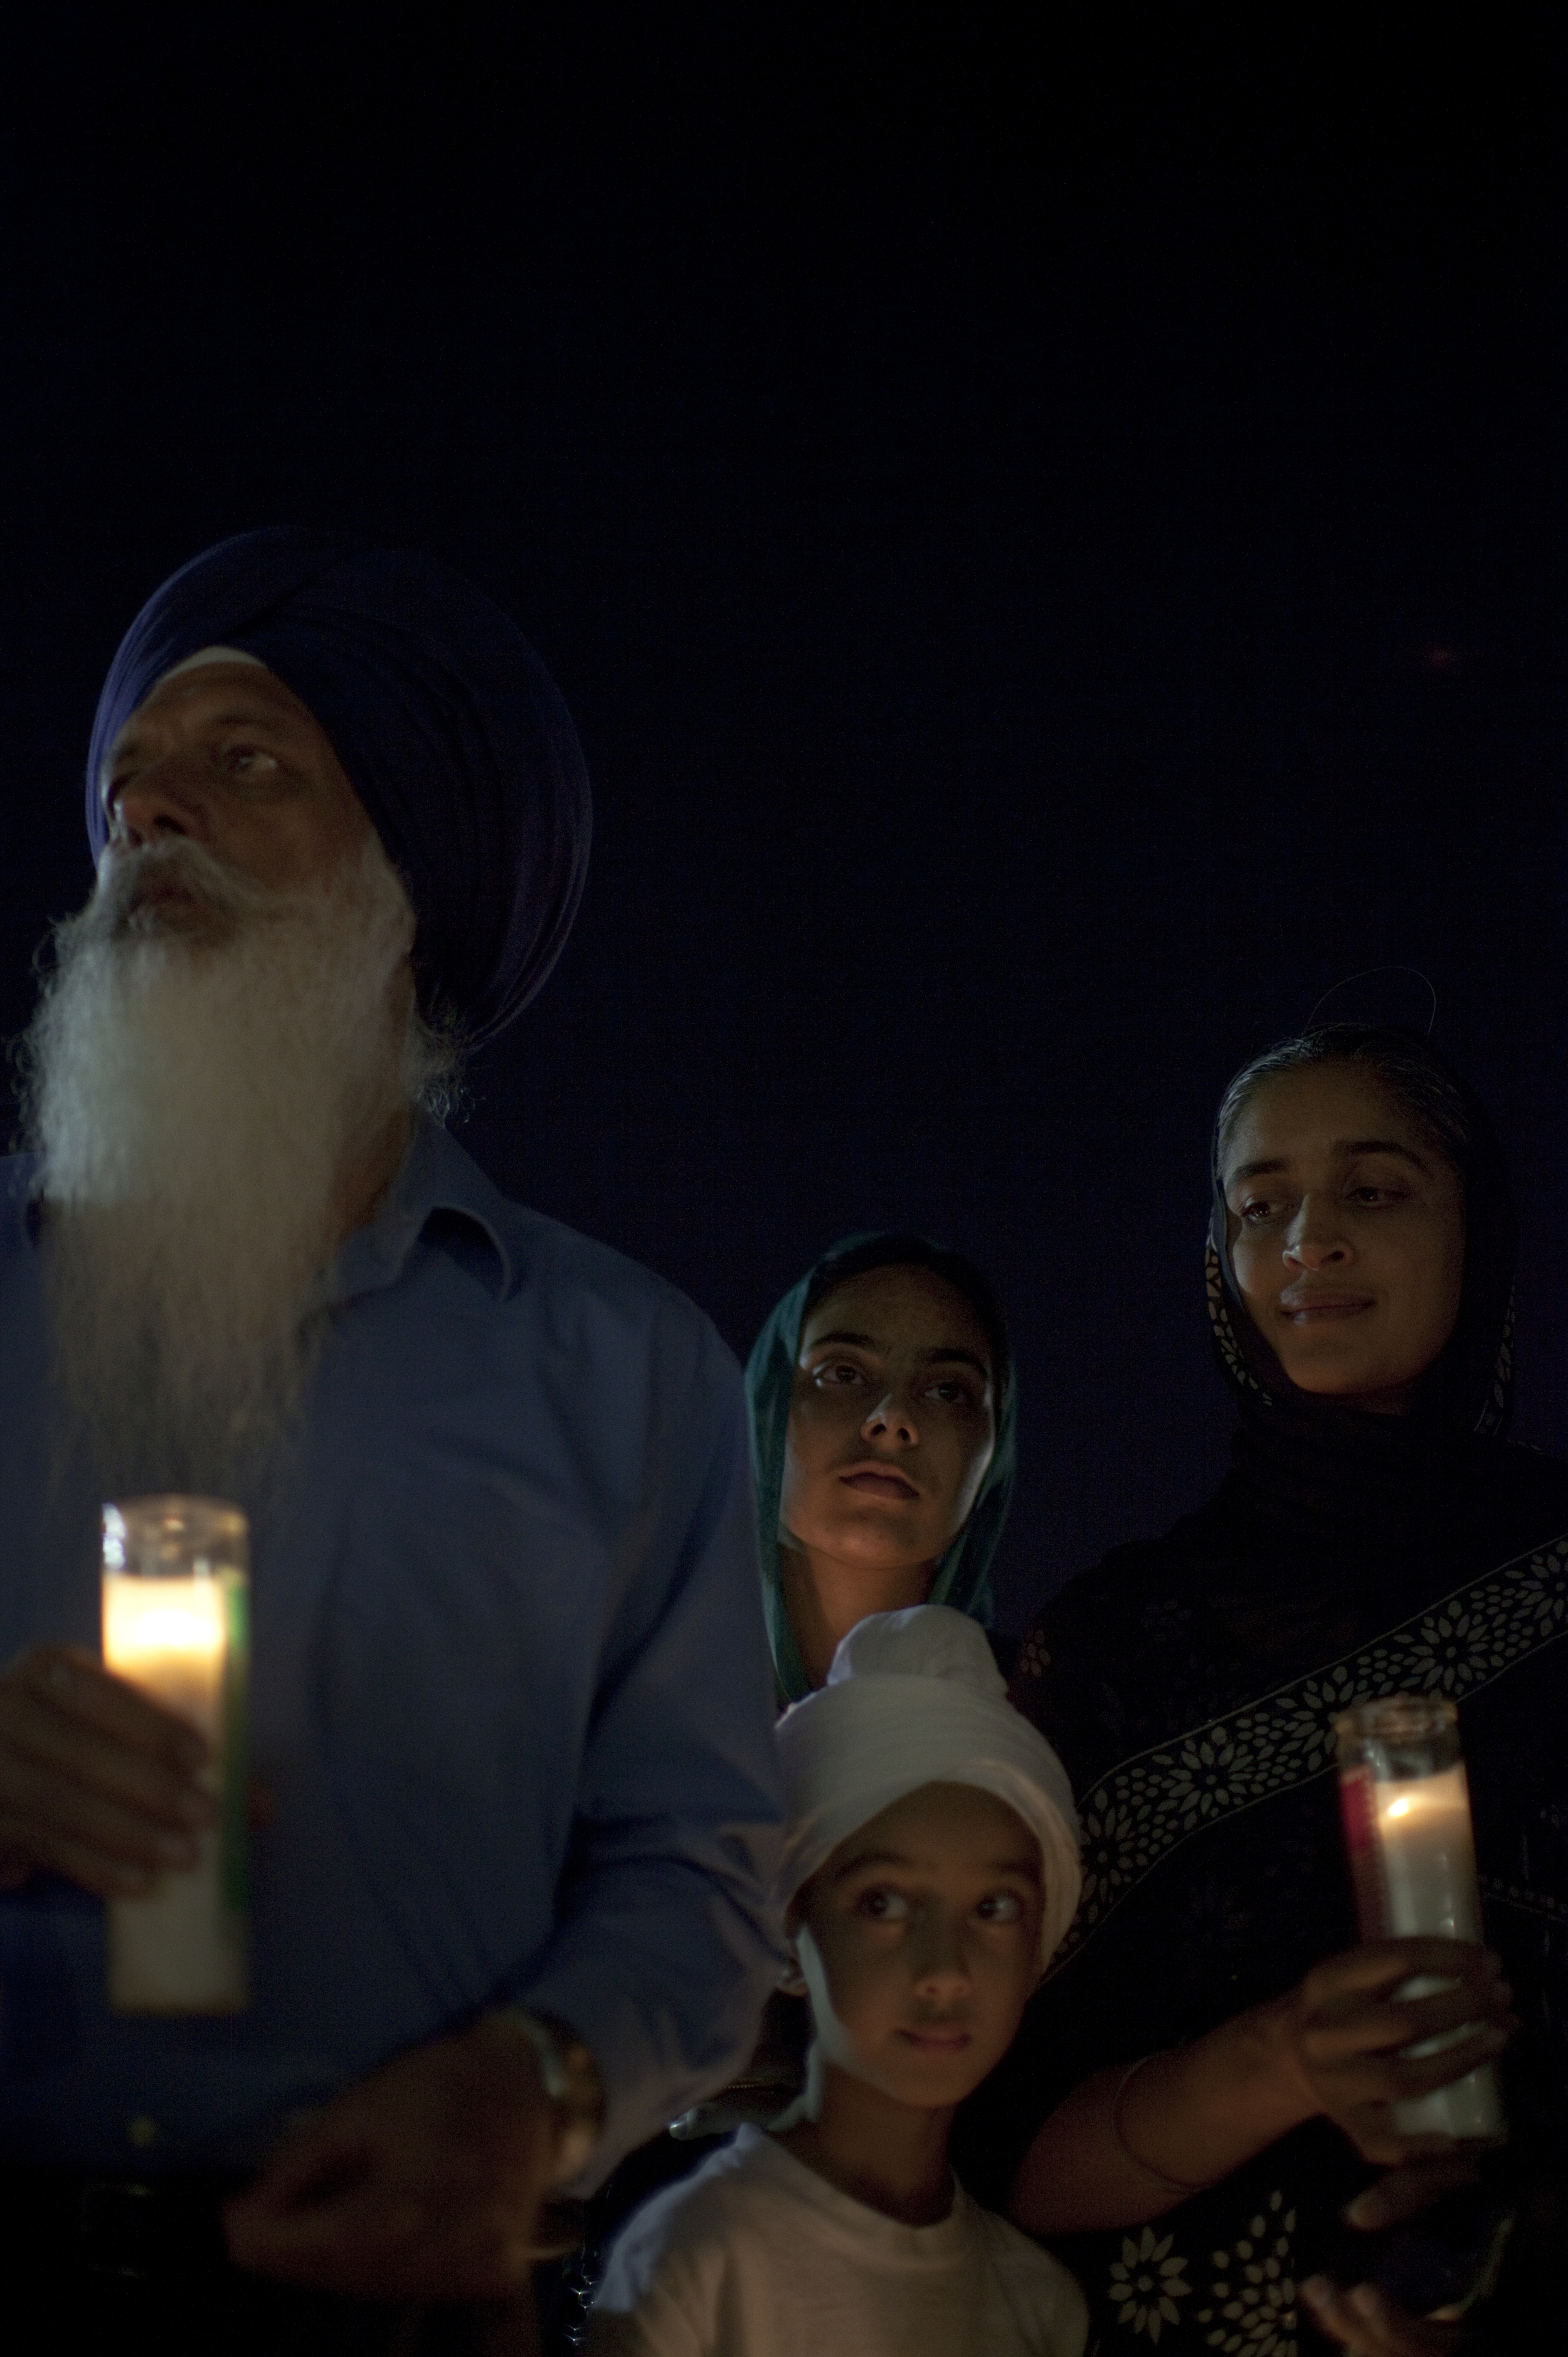 A family of the Sikh faith gathered at a candlelight vigil for sixworshipers who were shot and killedata Temple in Wisconsin by a white supremacist.